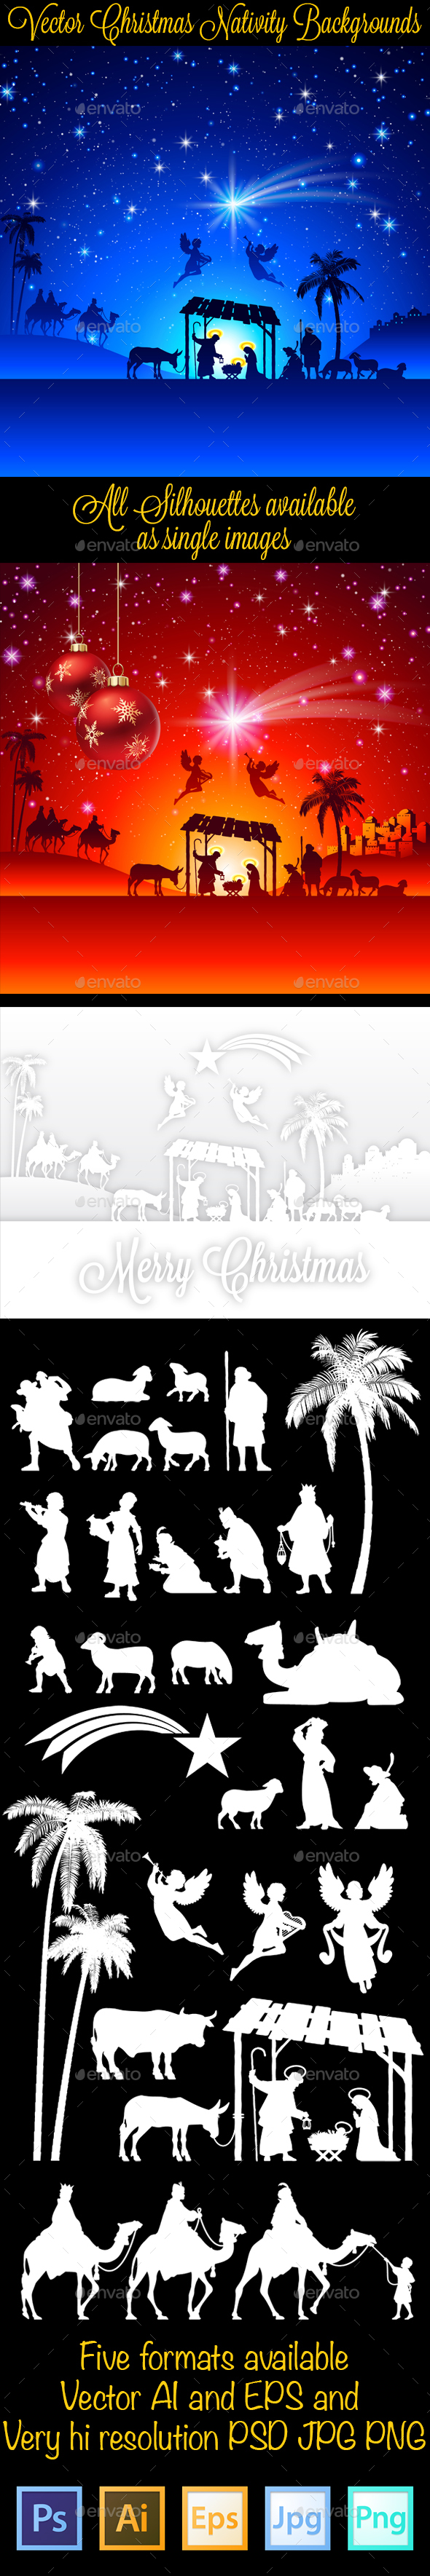 Christmas Nativity Silhouettes Backgrounds